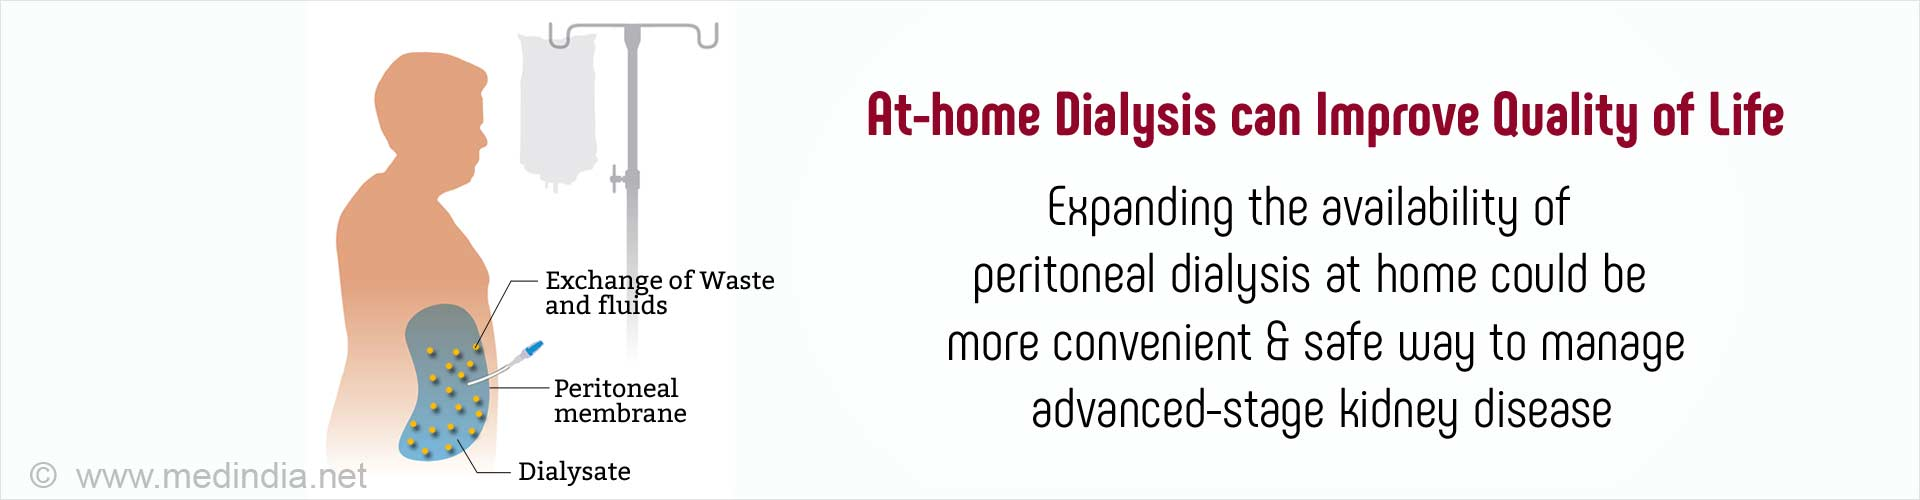 Home Dialysis can Improve Quality of Life for Kidney Disease Patients